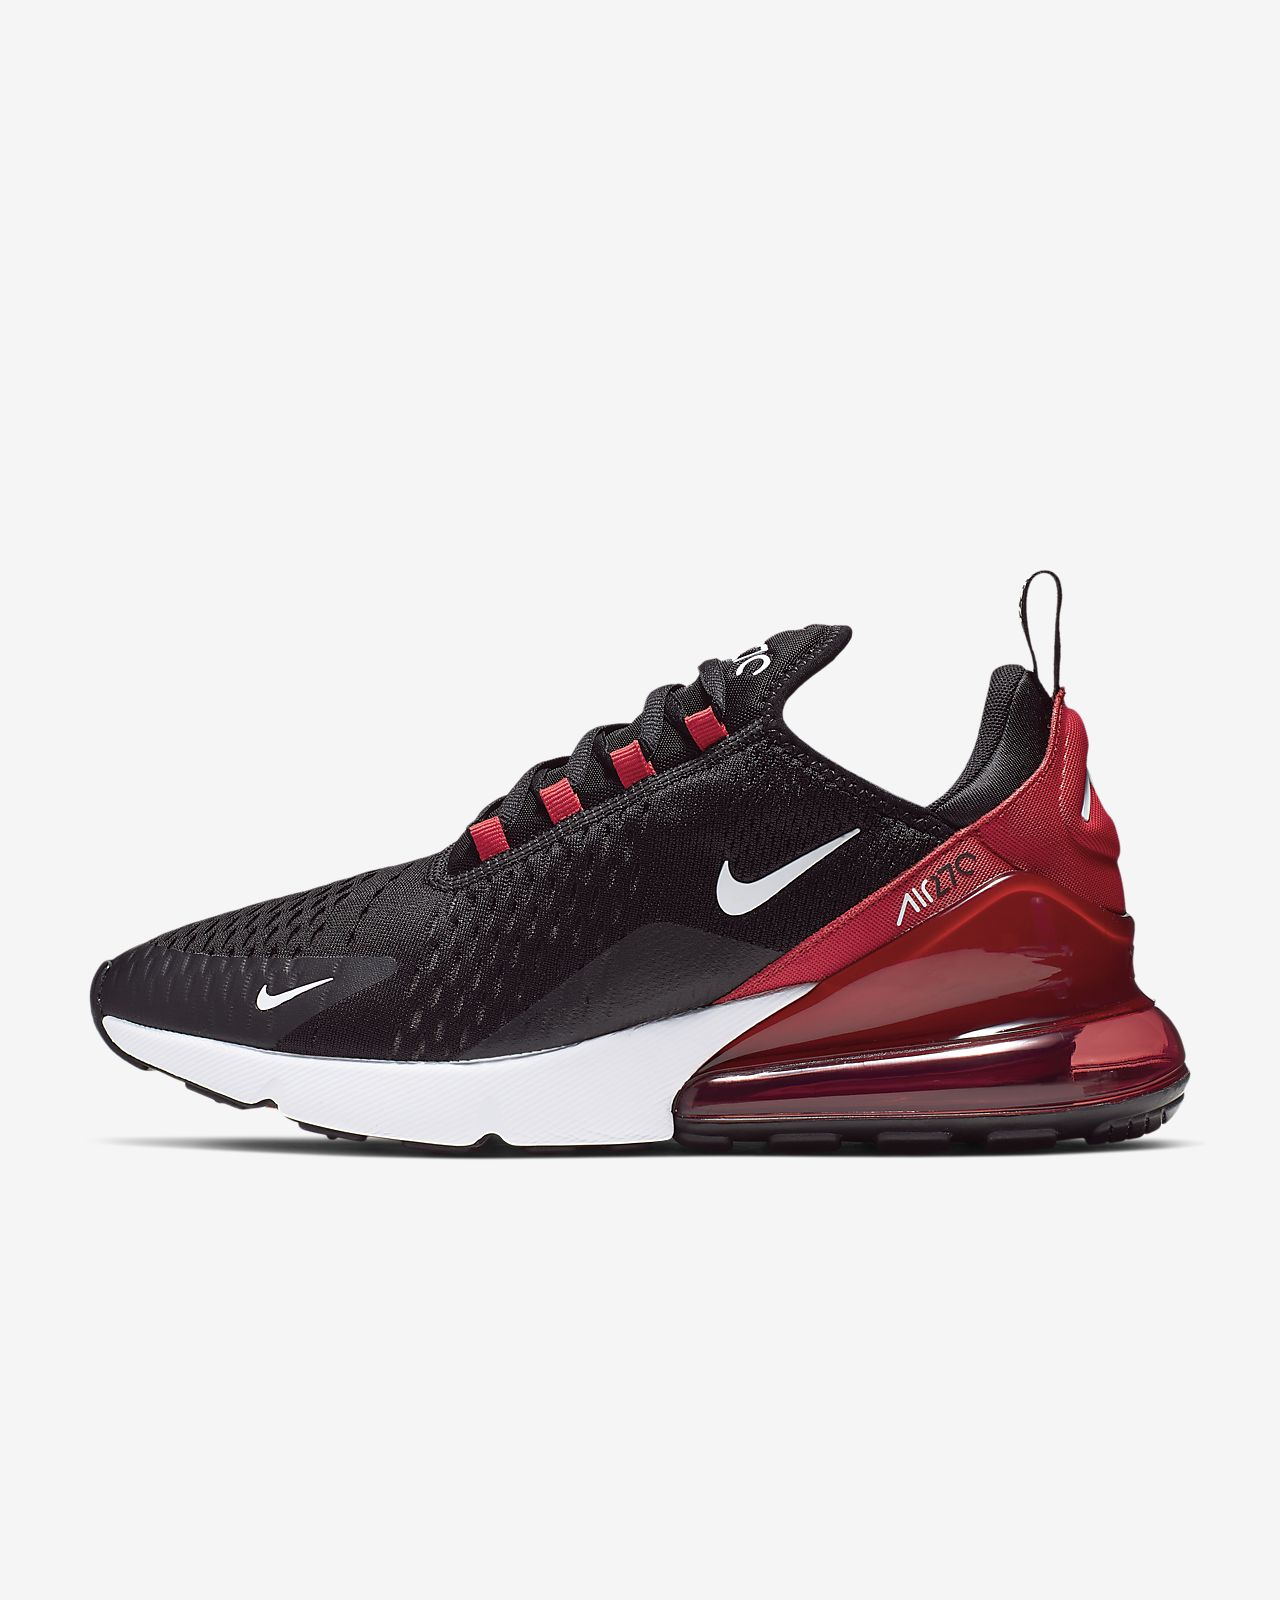 meet 4bc81 281cd Men s Shoe. Nike Air Max 270